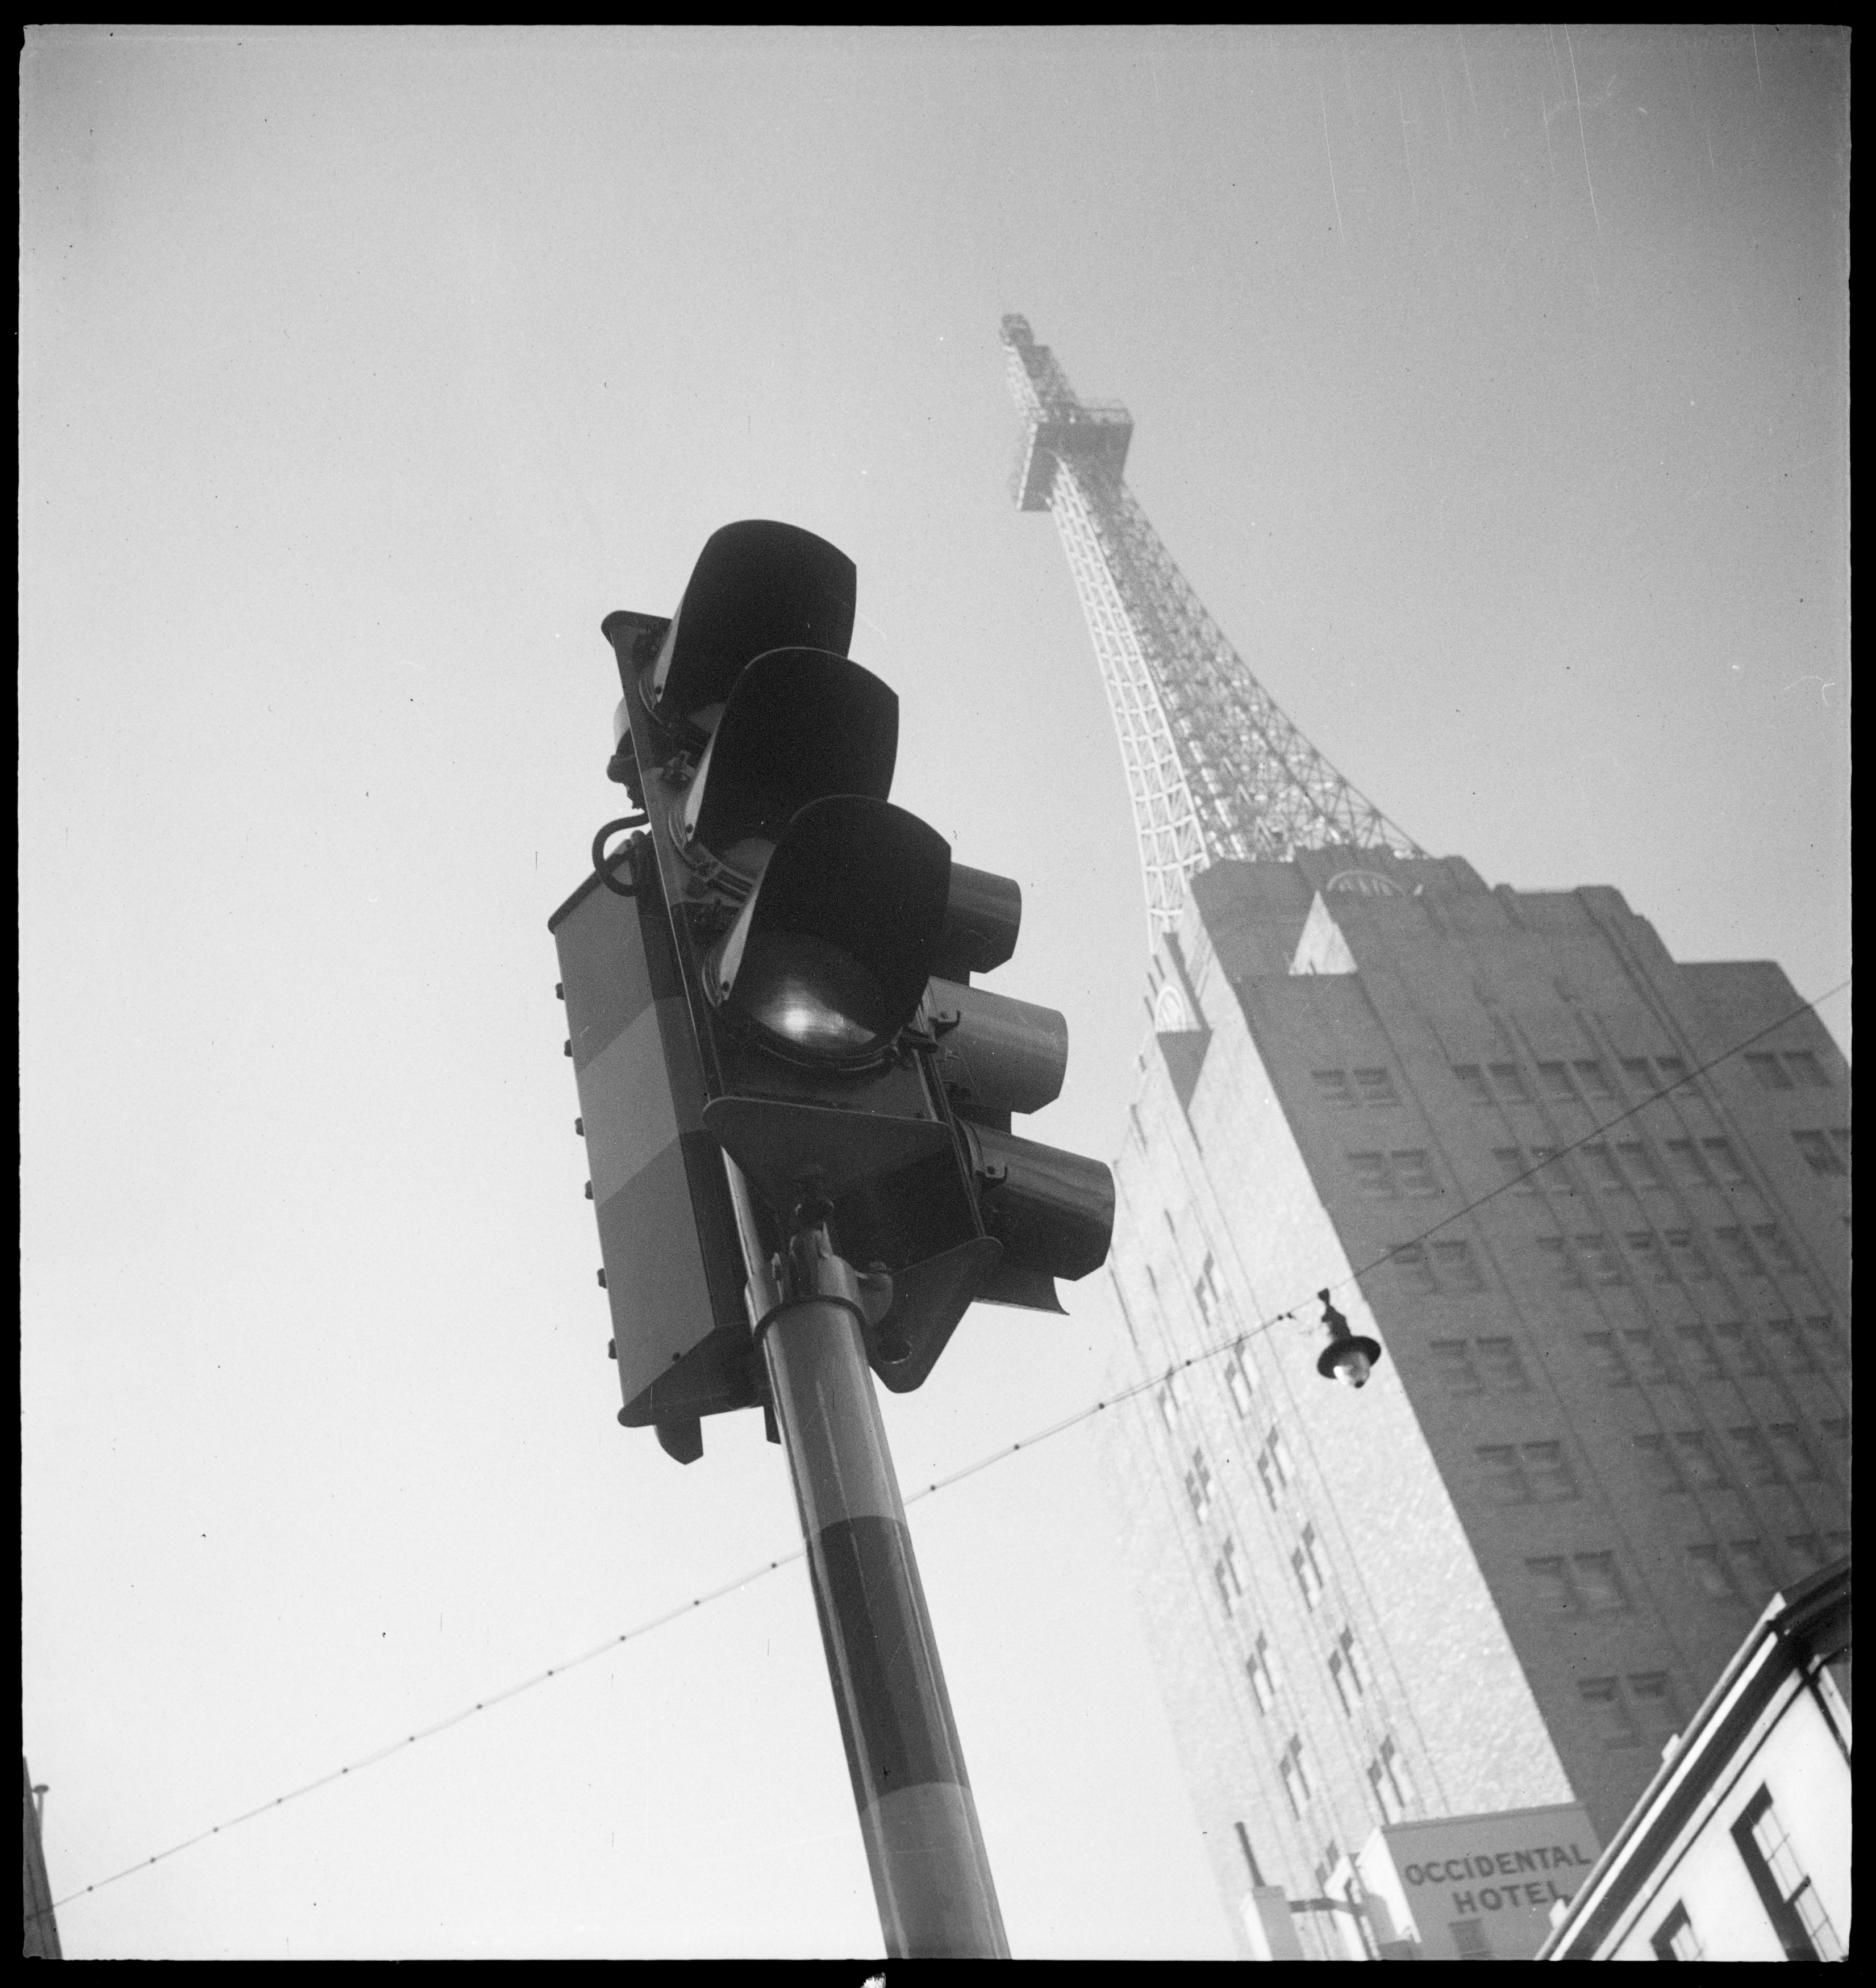 AWA building and traffic light, York Street, Sydney, ca. 1938, by Max Dupain, State Library of New South Wales